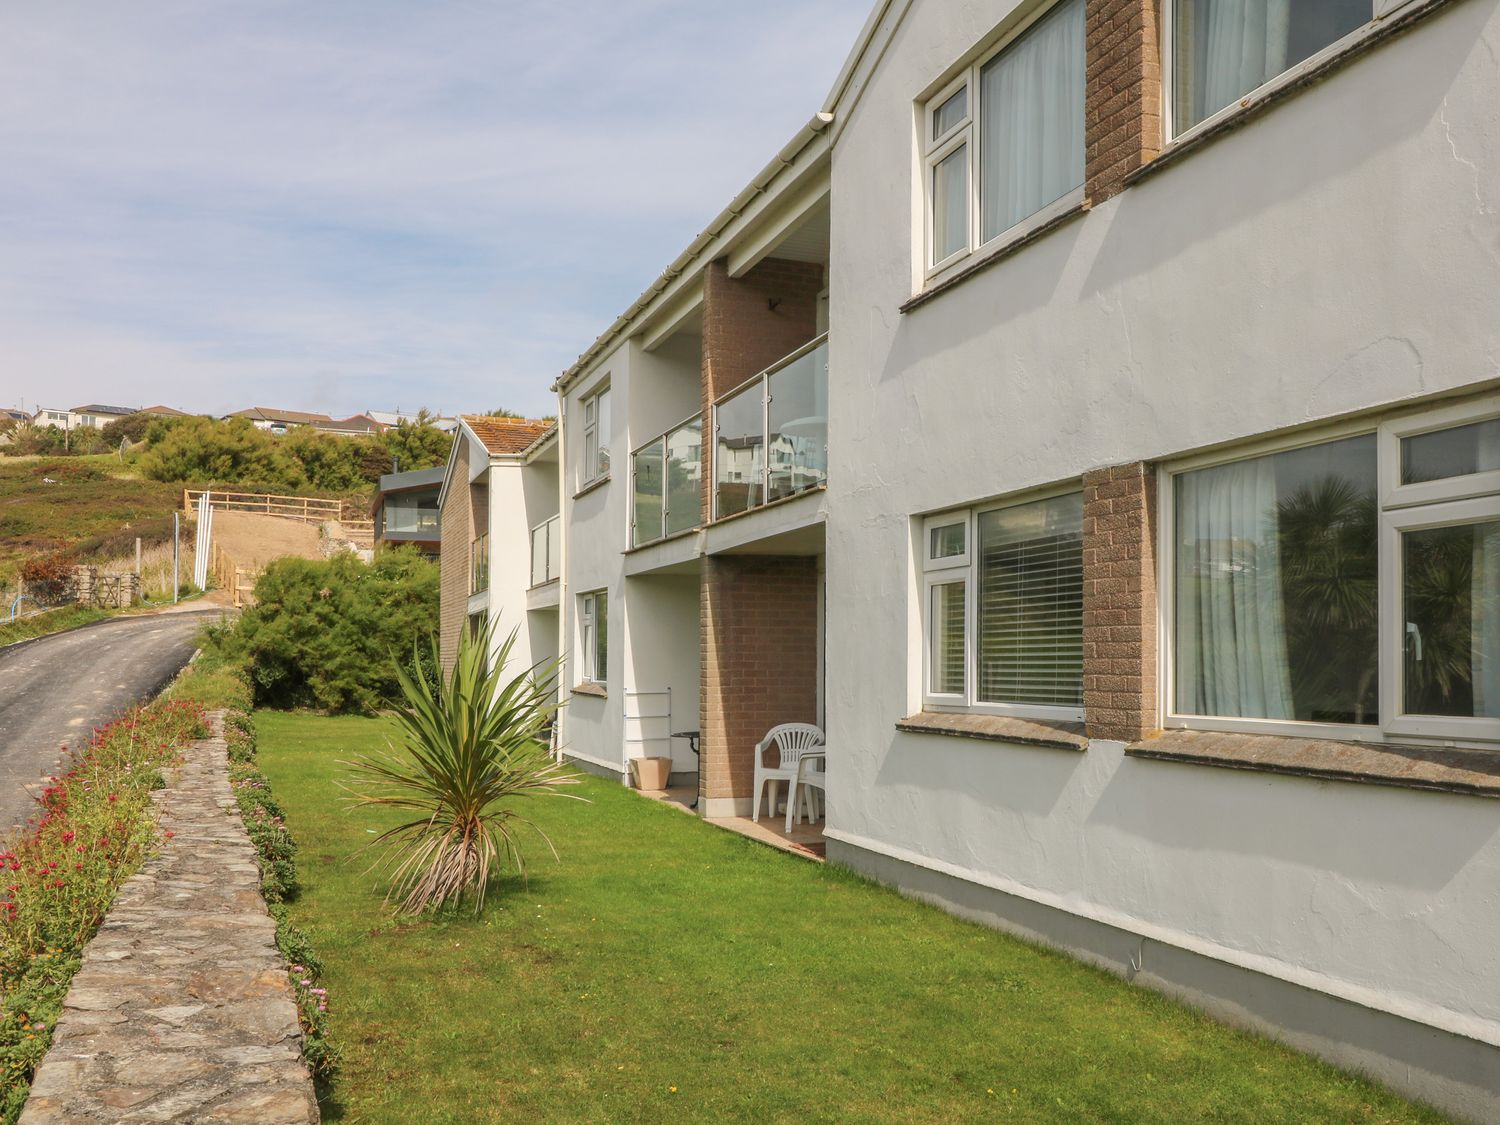 2 Europa Court - Cornwall - 1051023 - photo 1